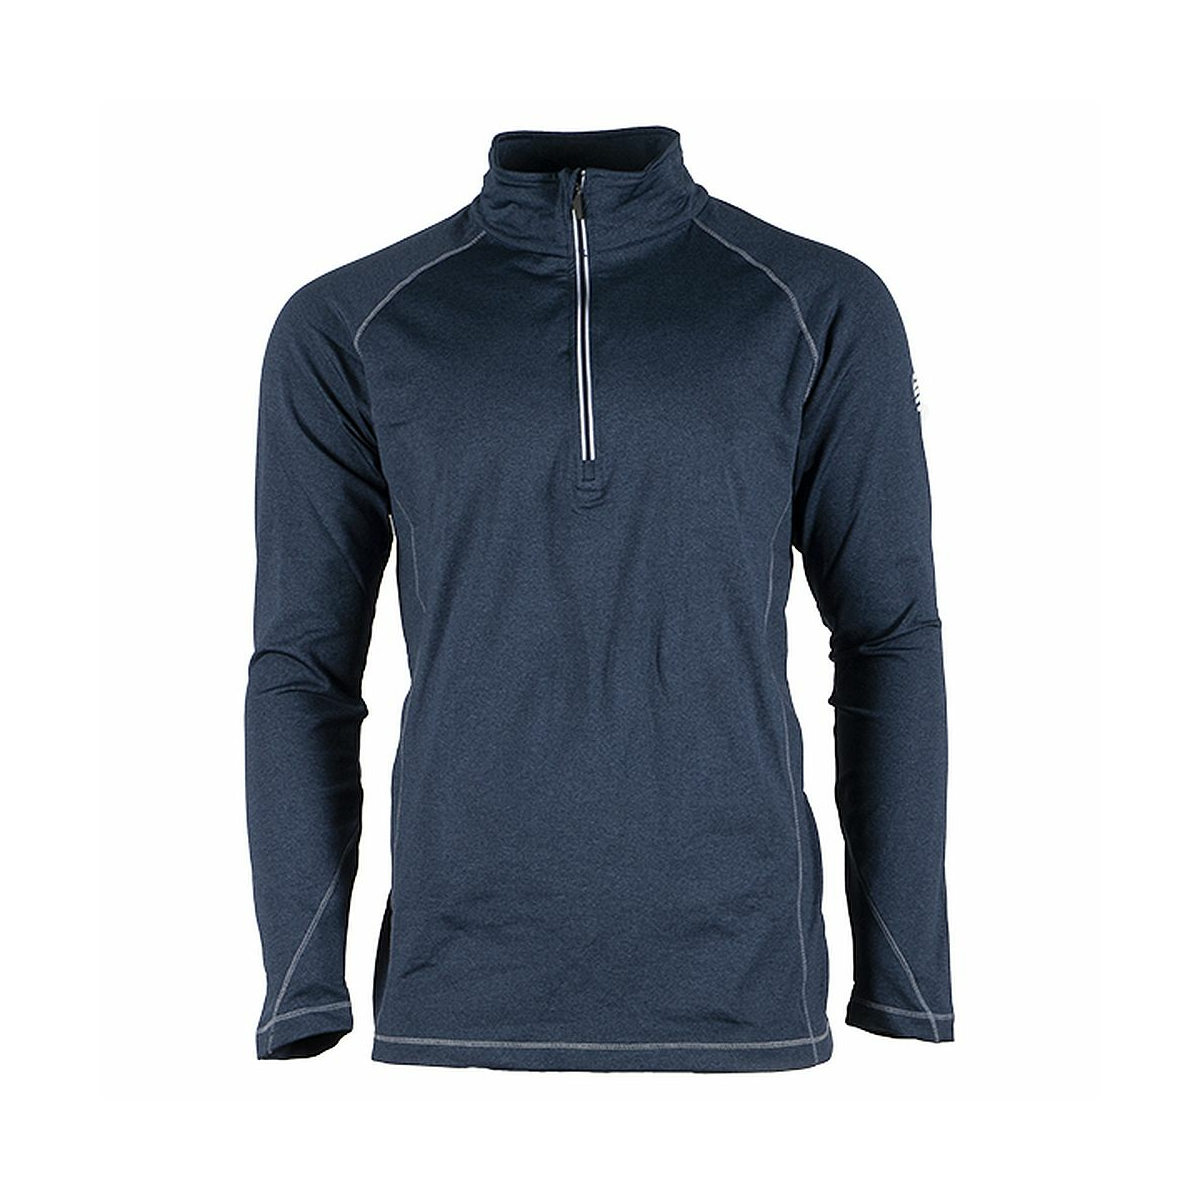 Golf-for-all Sportshirt Zipp Herren Navy M